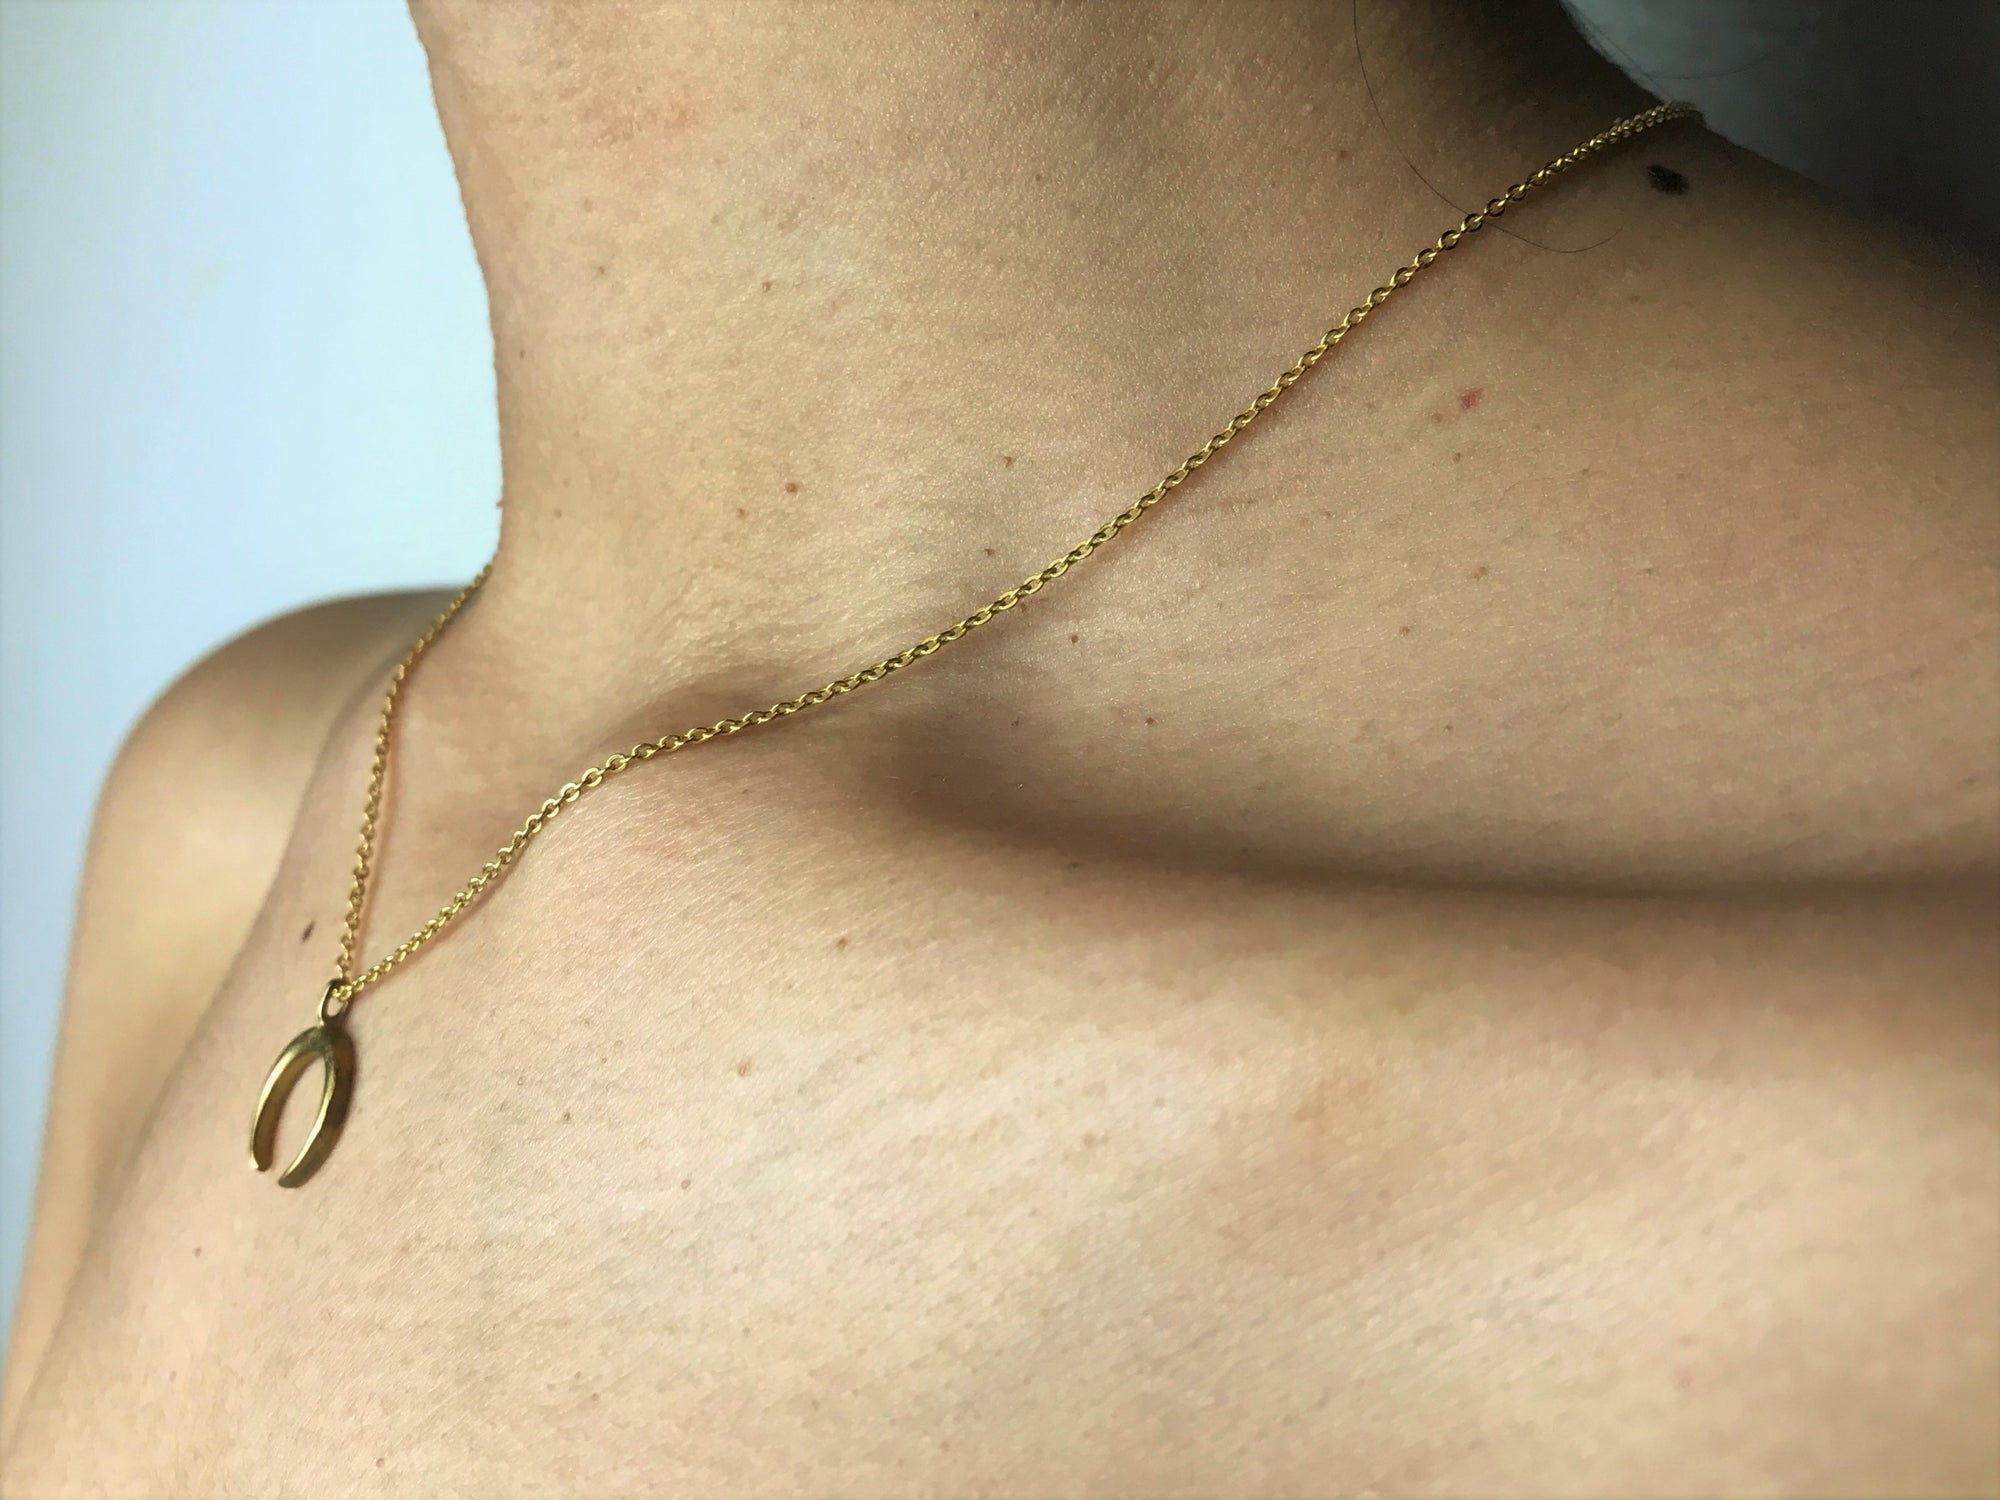 gold patterned chain choker, gold plated chain, gold plated choker, gold necklace, gold choker,gold linked chain, likned chain choker, thick choker chain,gold chain choker necklace,gold chain choker set,gold plated brass choker,dainty gold chain choker,moon choker,moon necklace, gold moon choker, gold moon necklace, black moon necklace, simple moon chooker, simple moon necklacce, moon necklaces,moon chokers